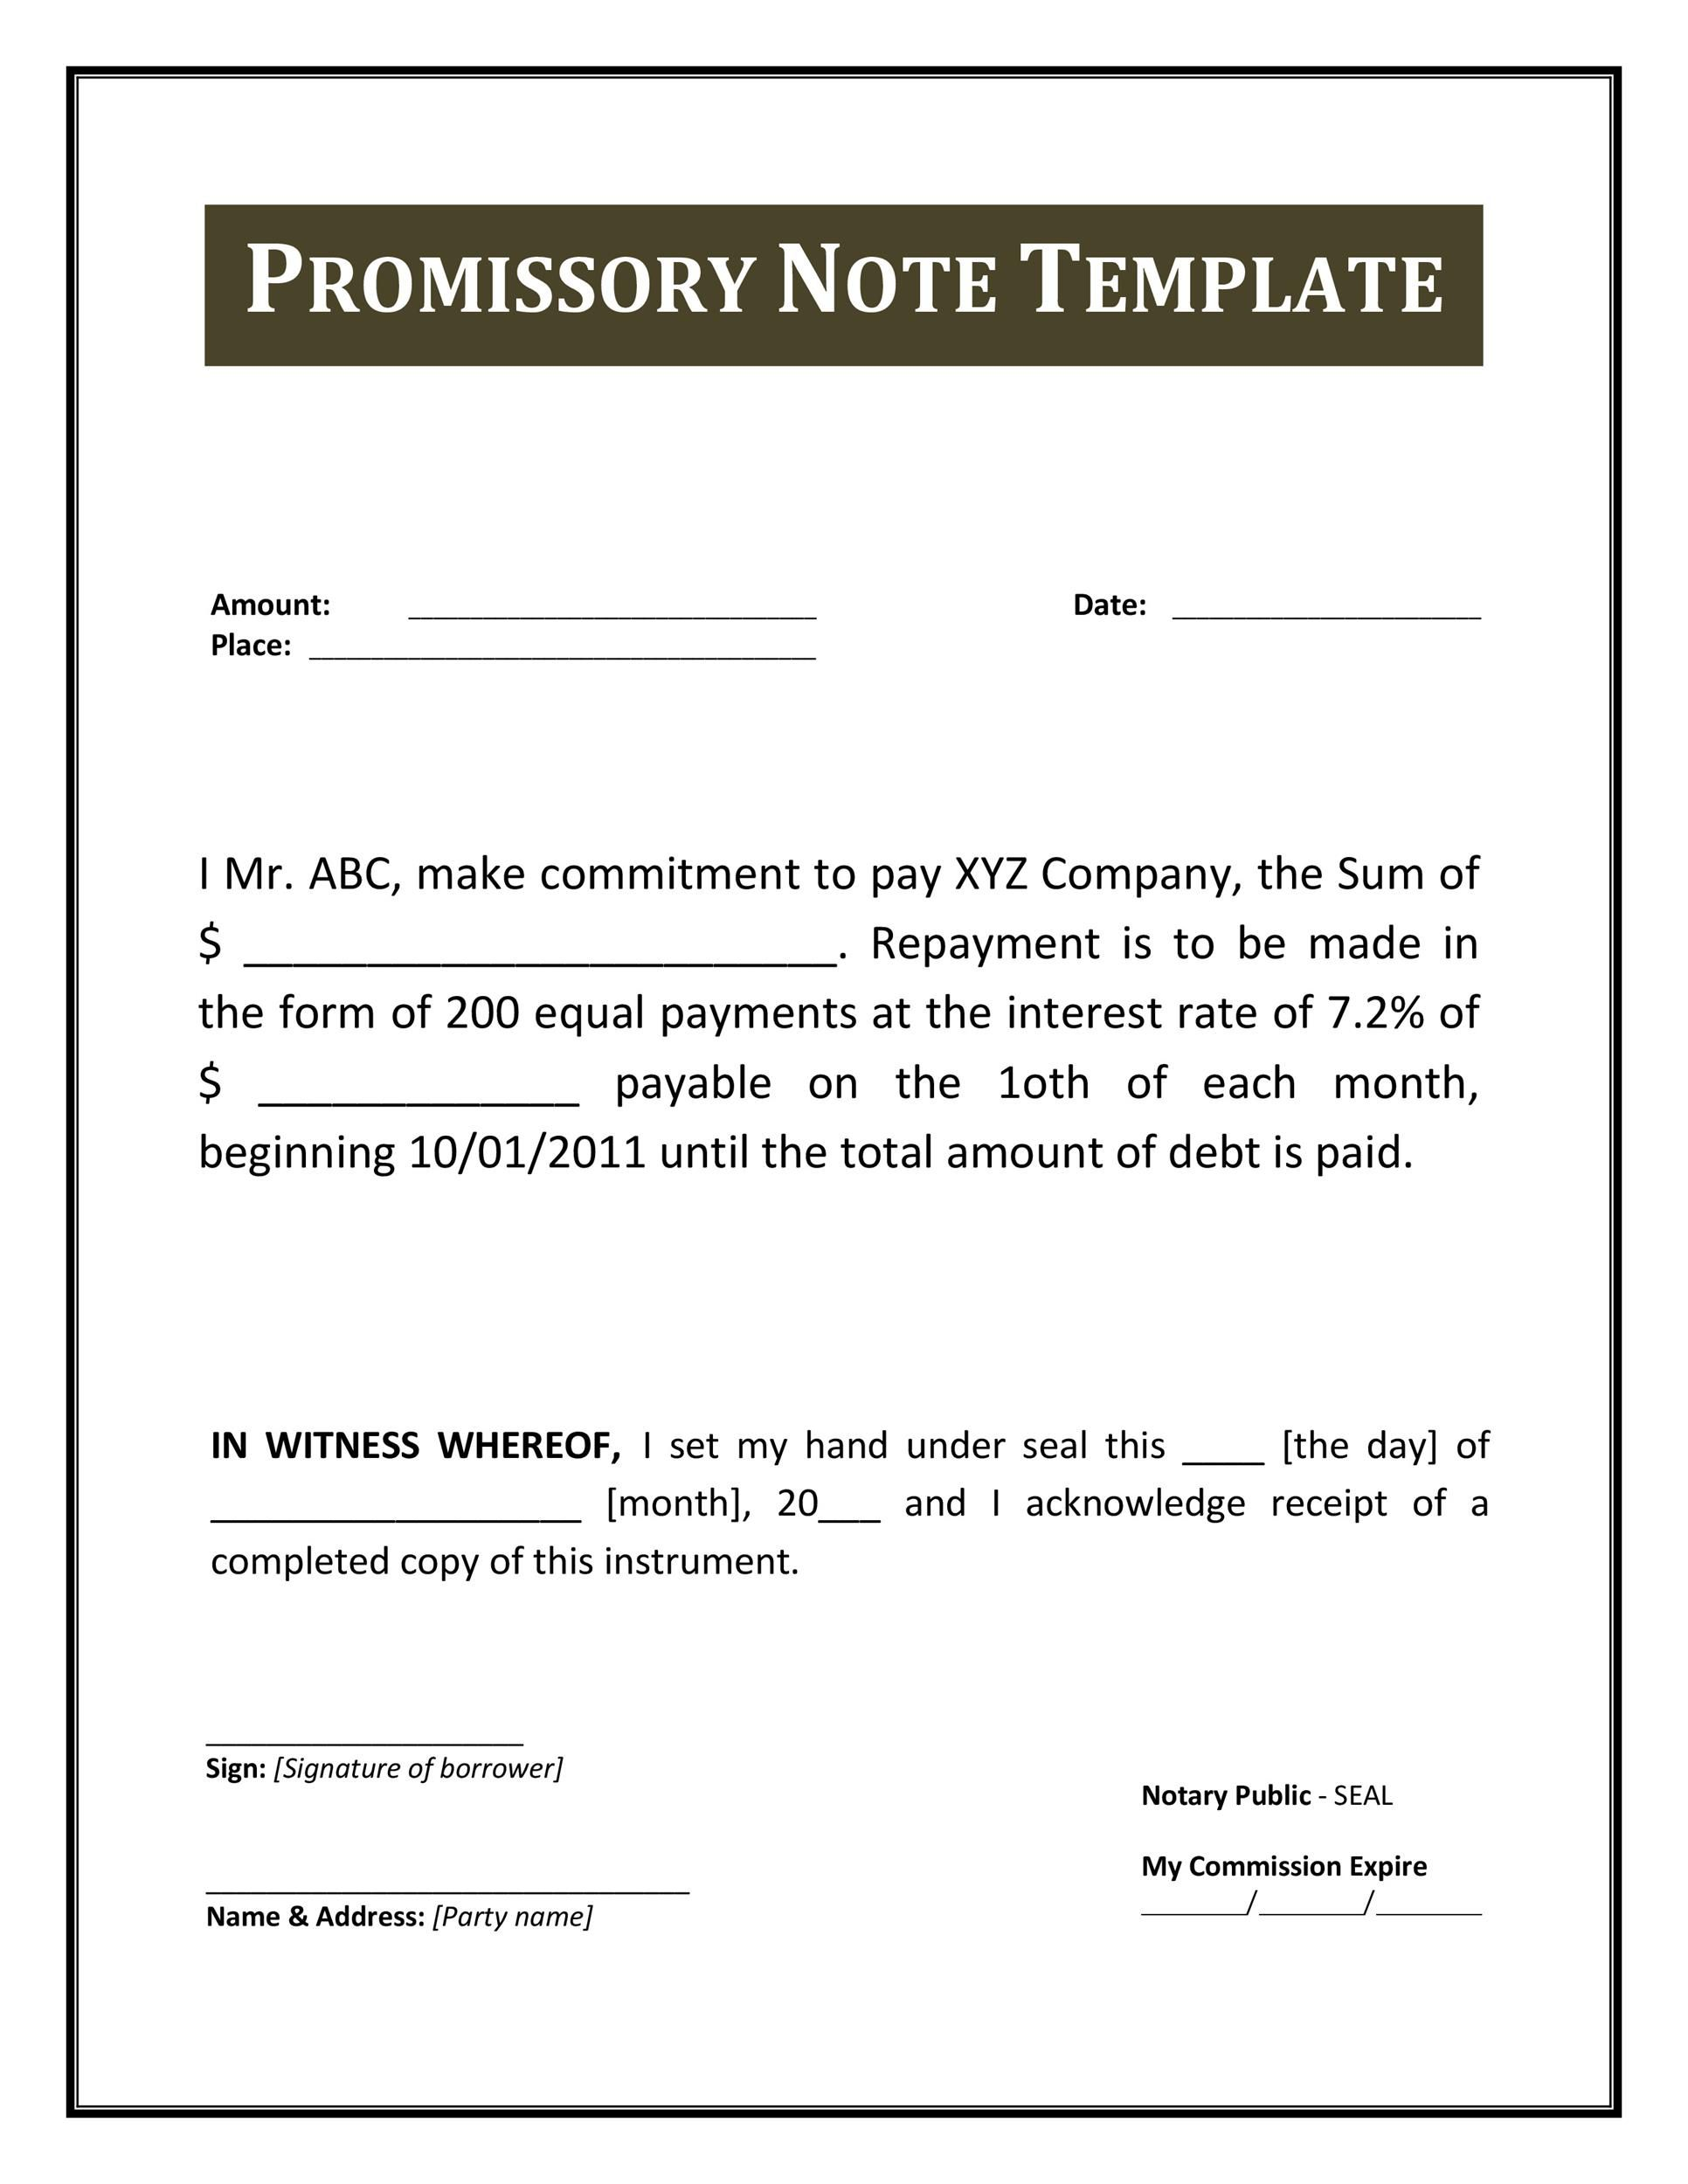 007 Unbelievable Template For Promissory Note Design  Free Personal Loan UkFull